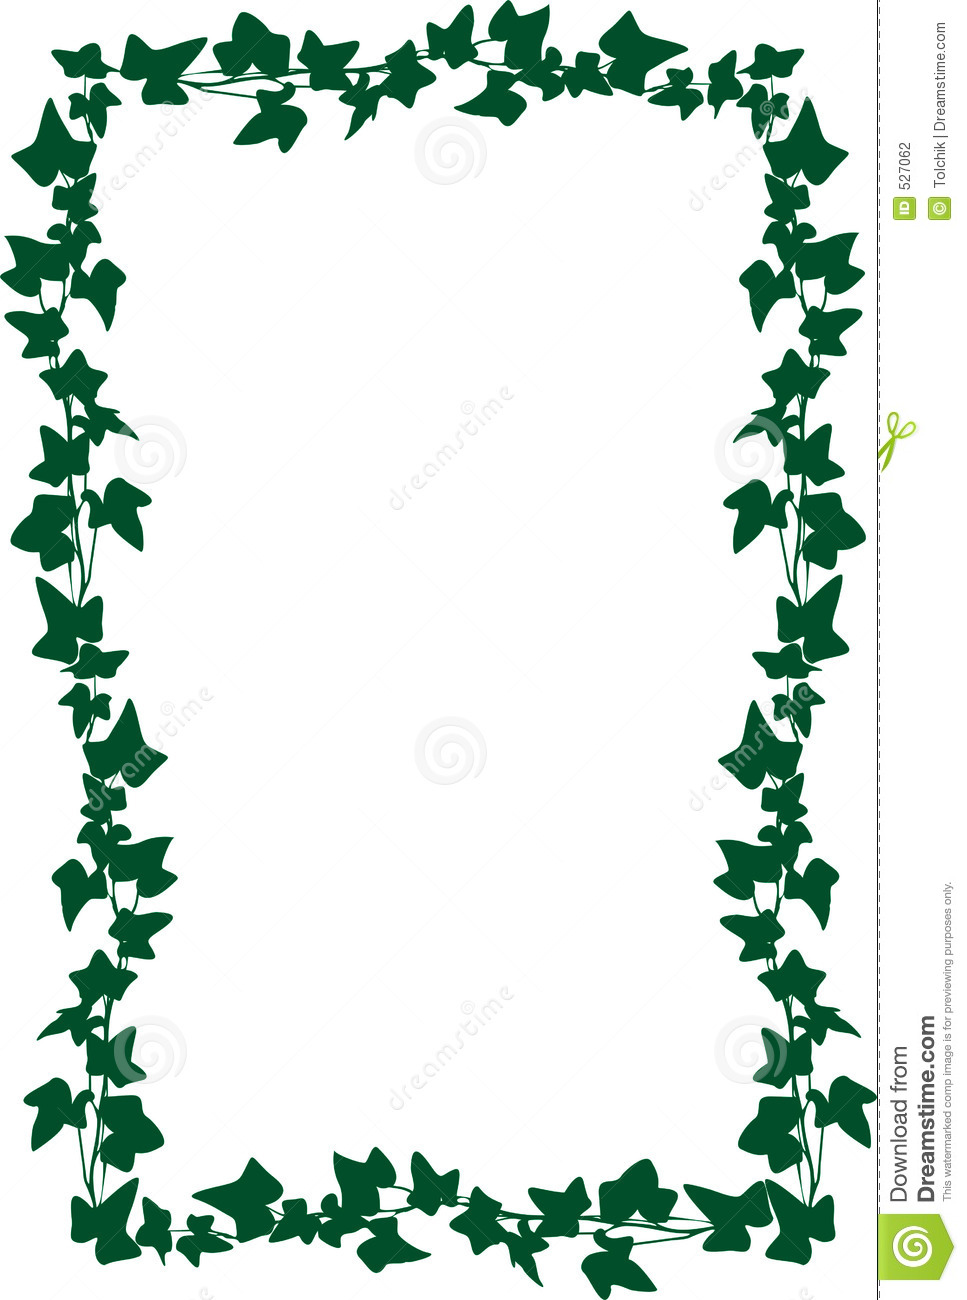 The best free Ivy clipart images. Download from 98 free.